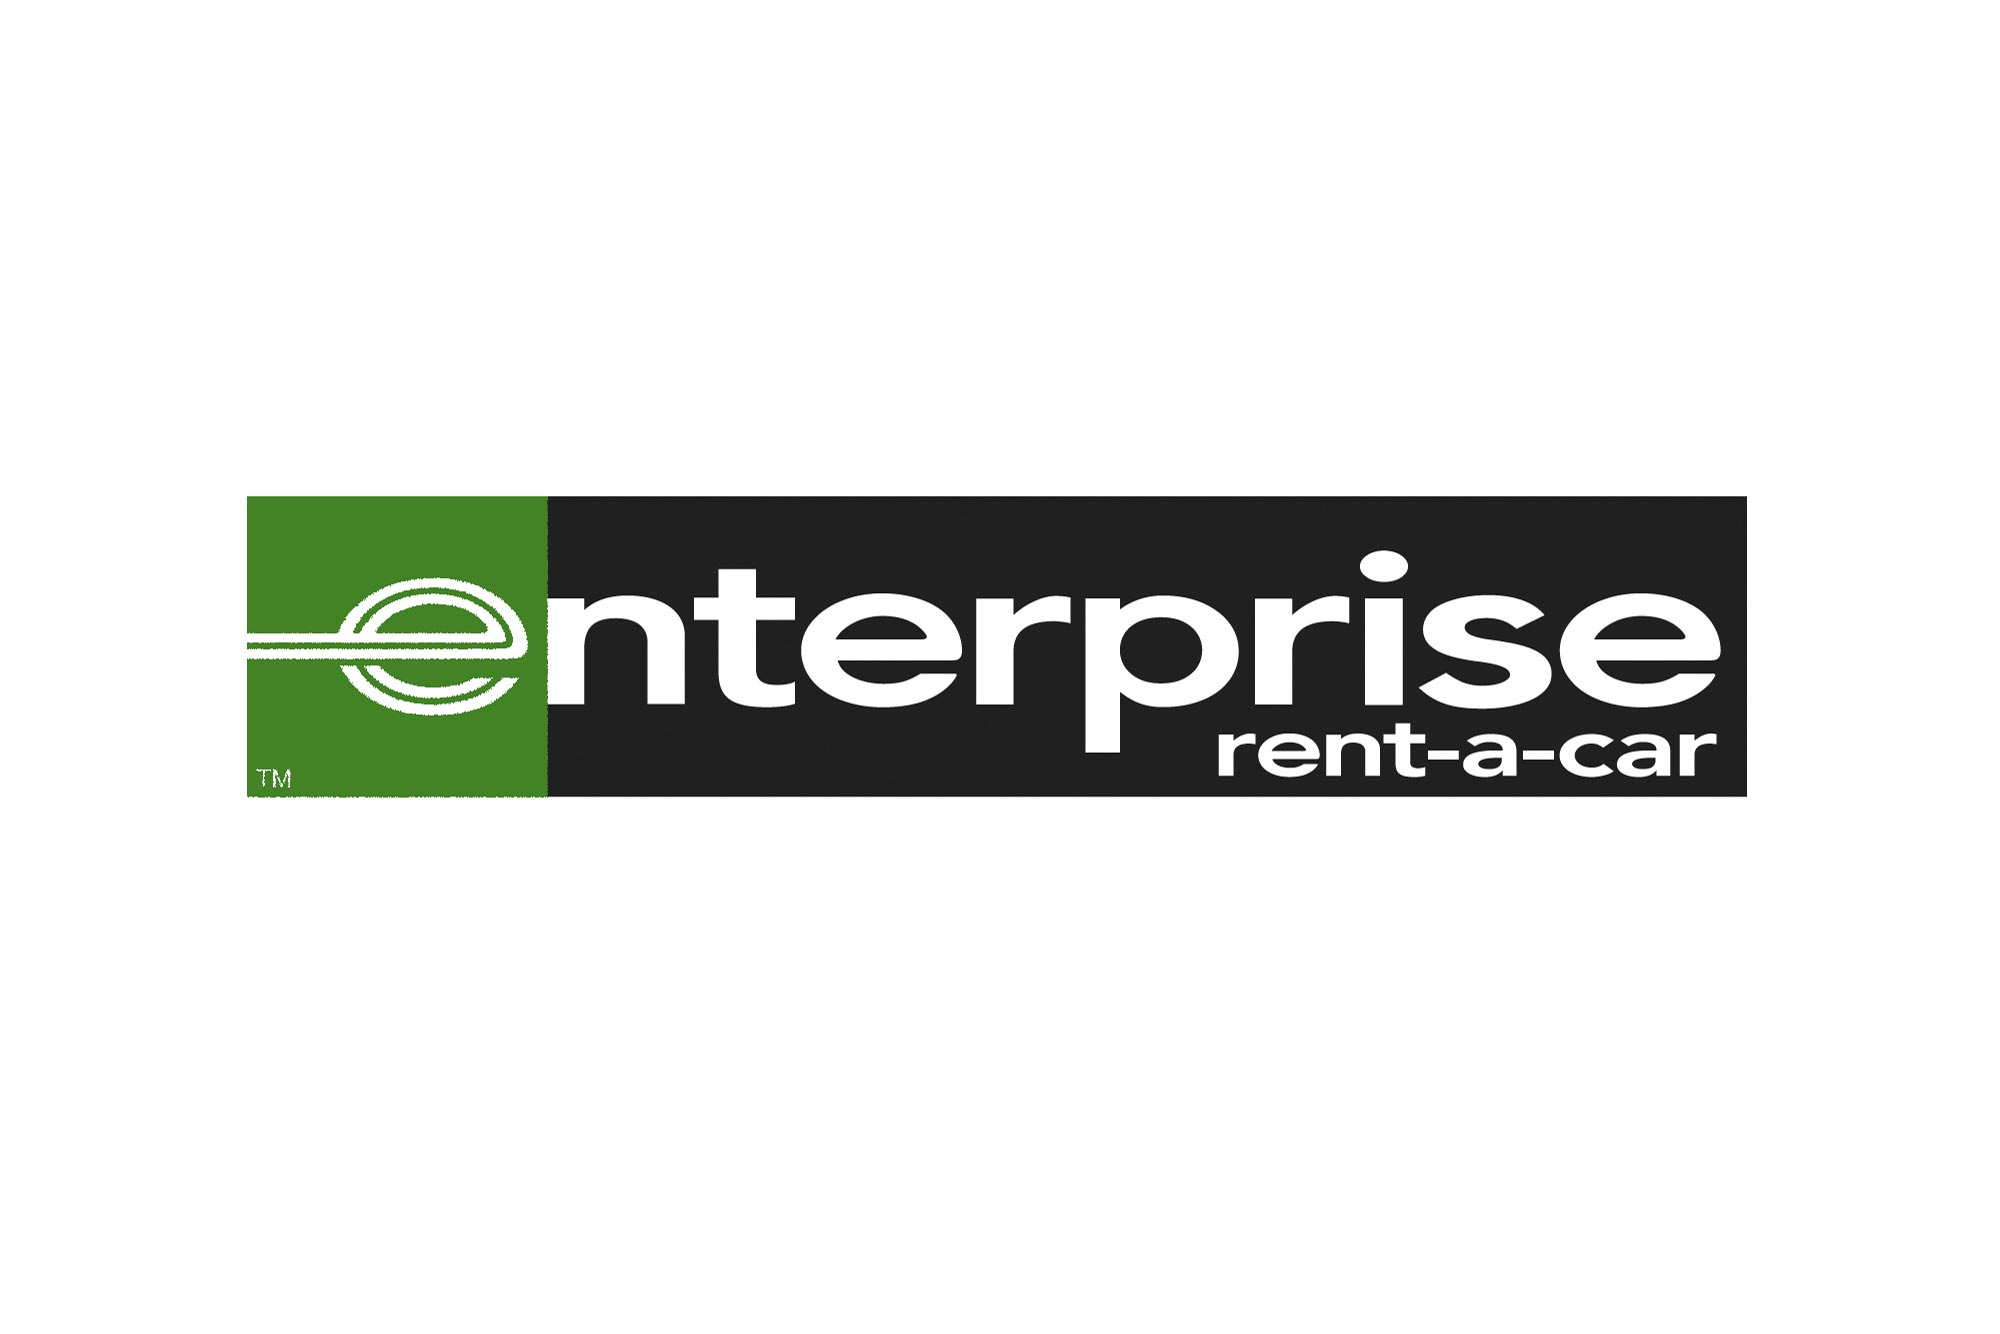 Enterprise Holdings/Enterprise Rent-A-Car/Alamo Rent A Car and National Car Rental seeks and values people of all backgrounds because every employee, customer and business partner is important. Enterprise Holdings is proud to be an Equal Opportunity Employer.